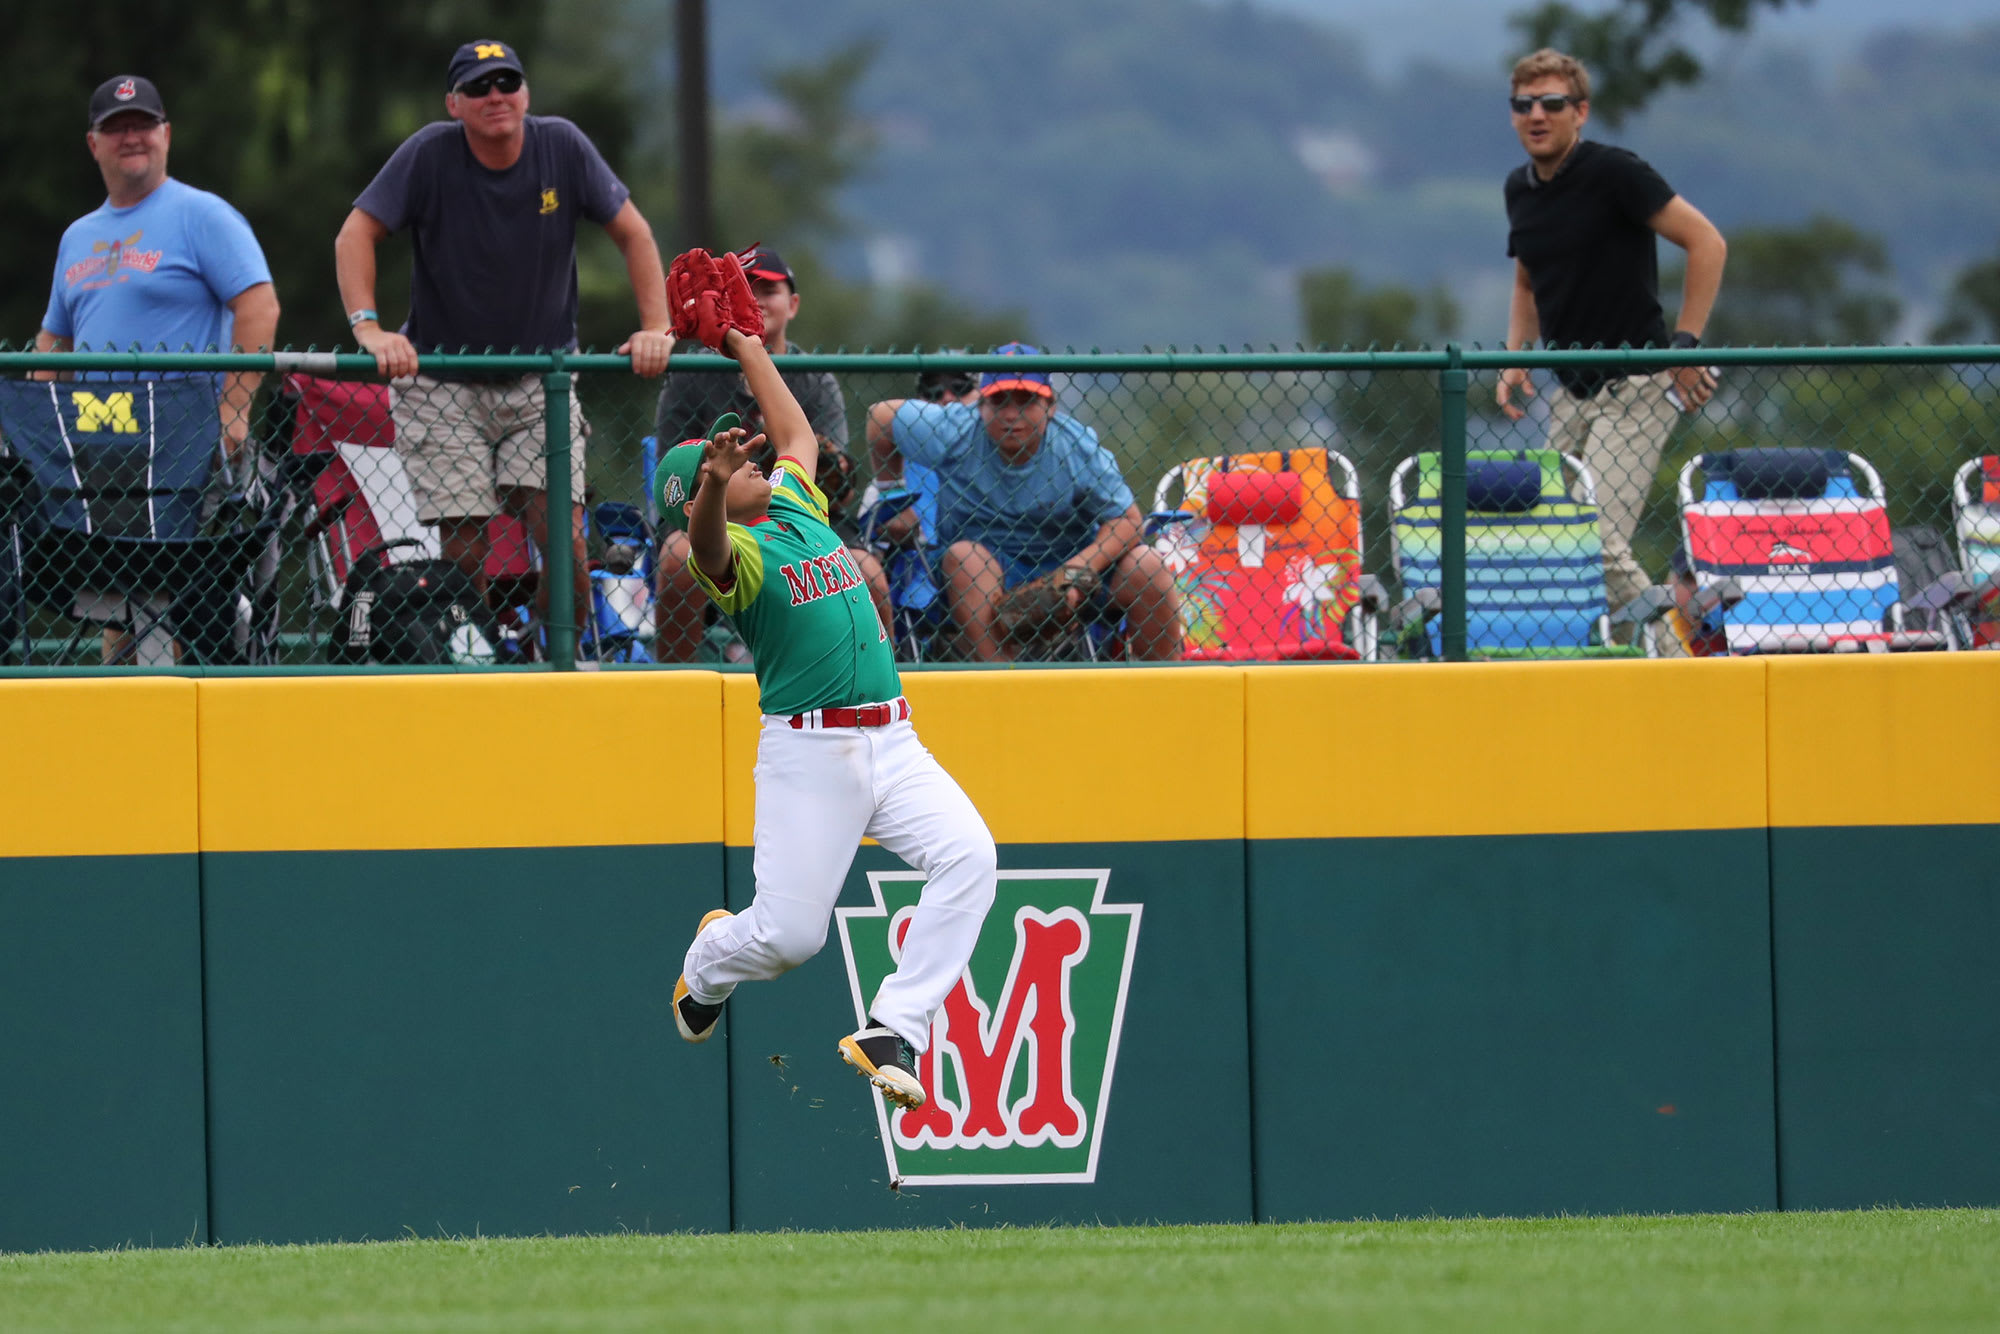 Jumping catch by MEX outfielder